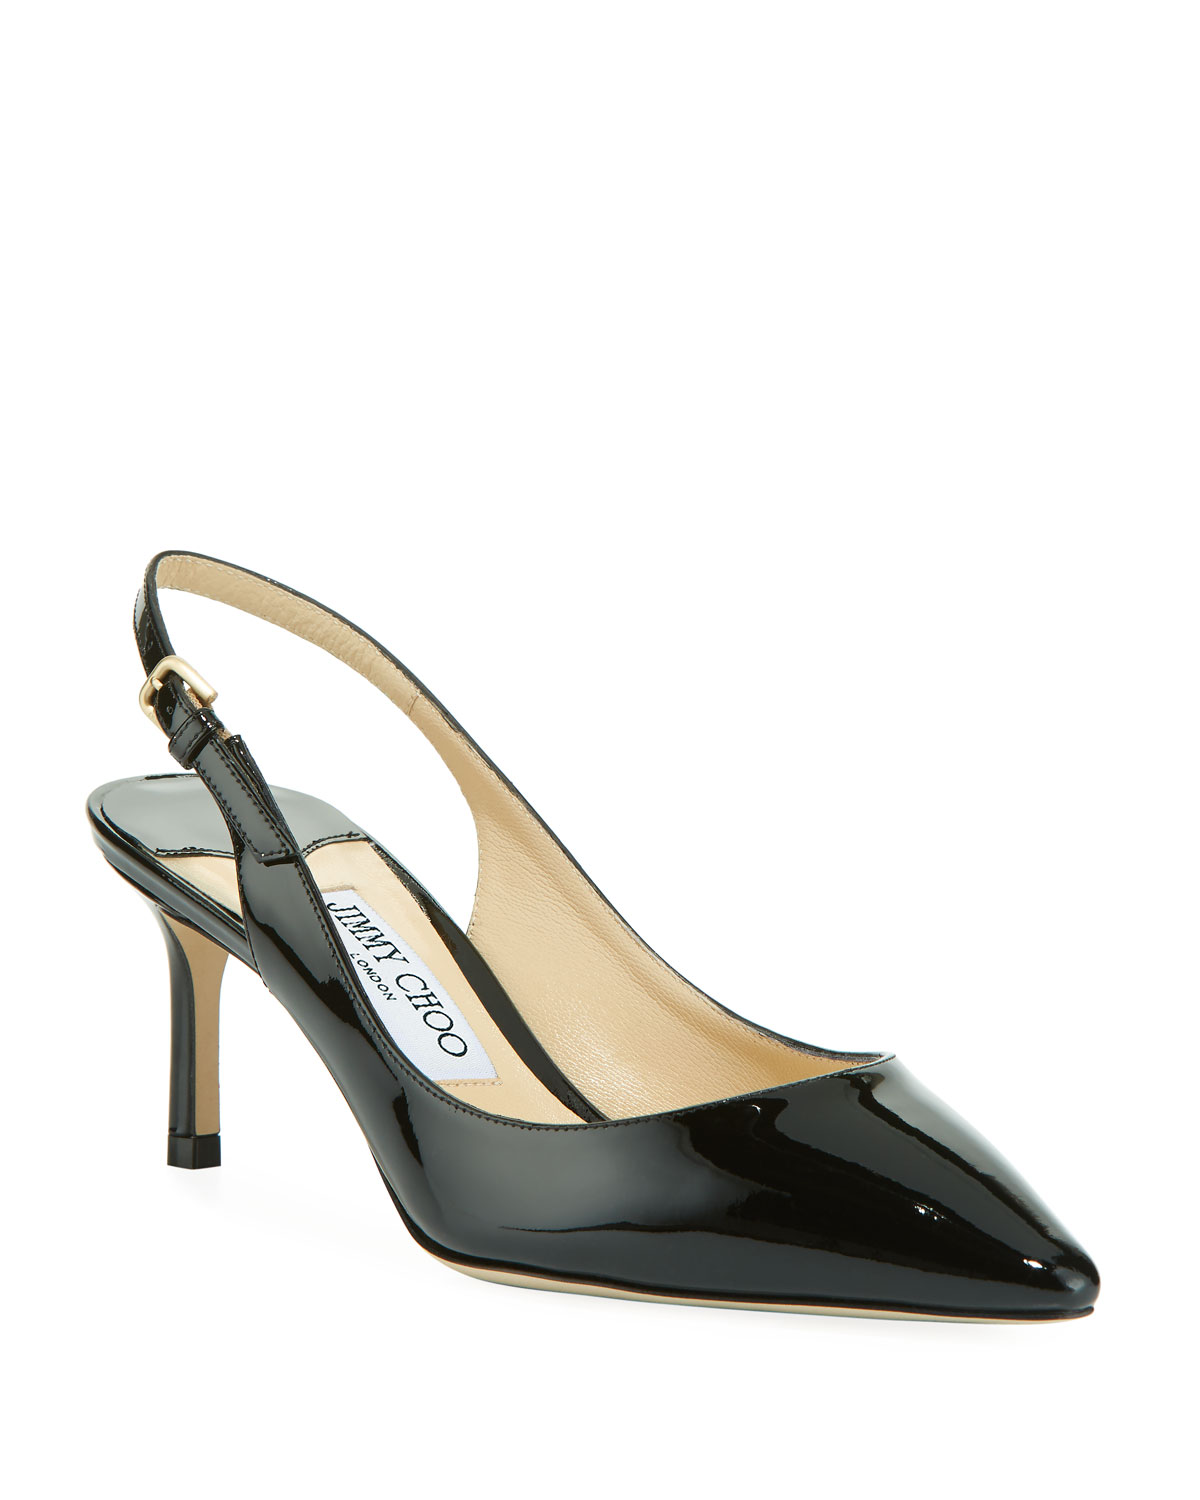 2c8a7e691af Jimmy Choo Erin 60mm Patent Leather Slingback Pumps